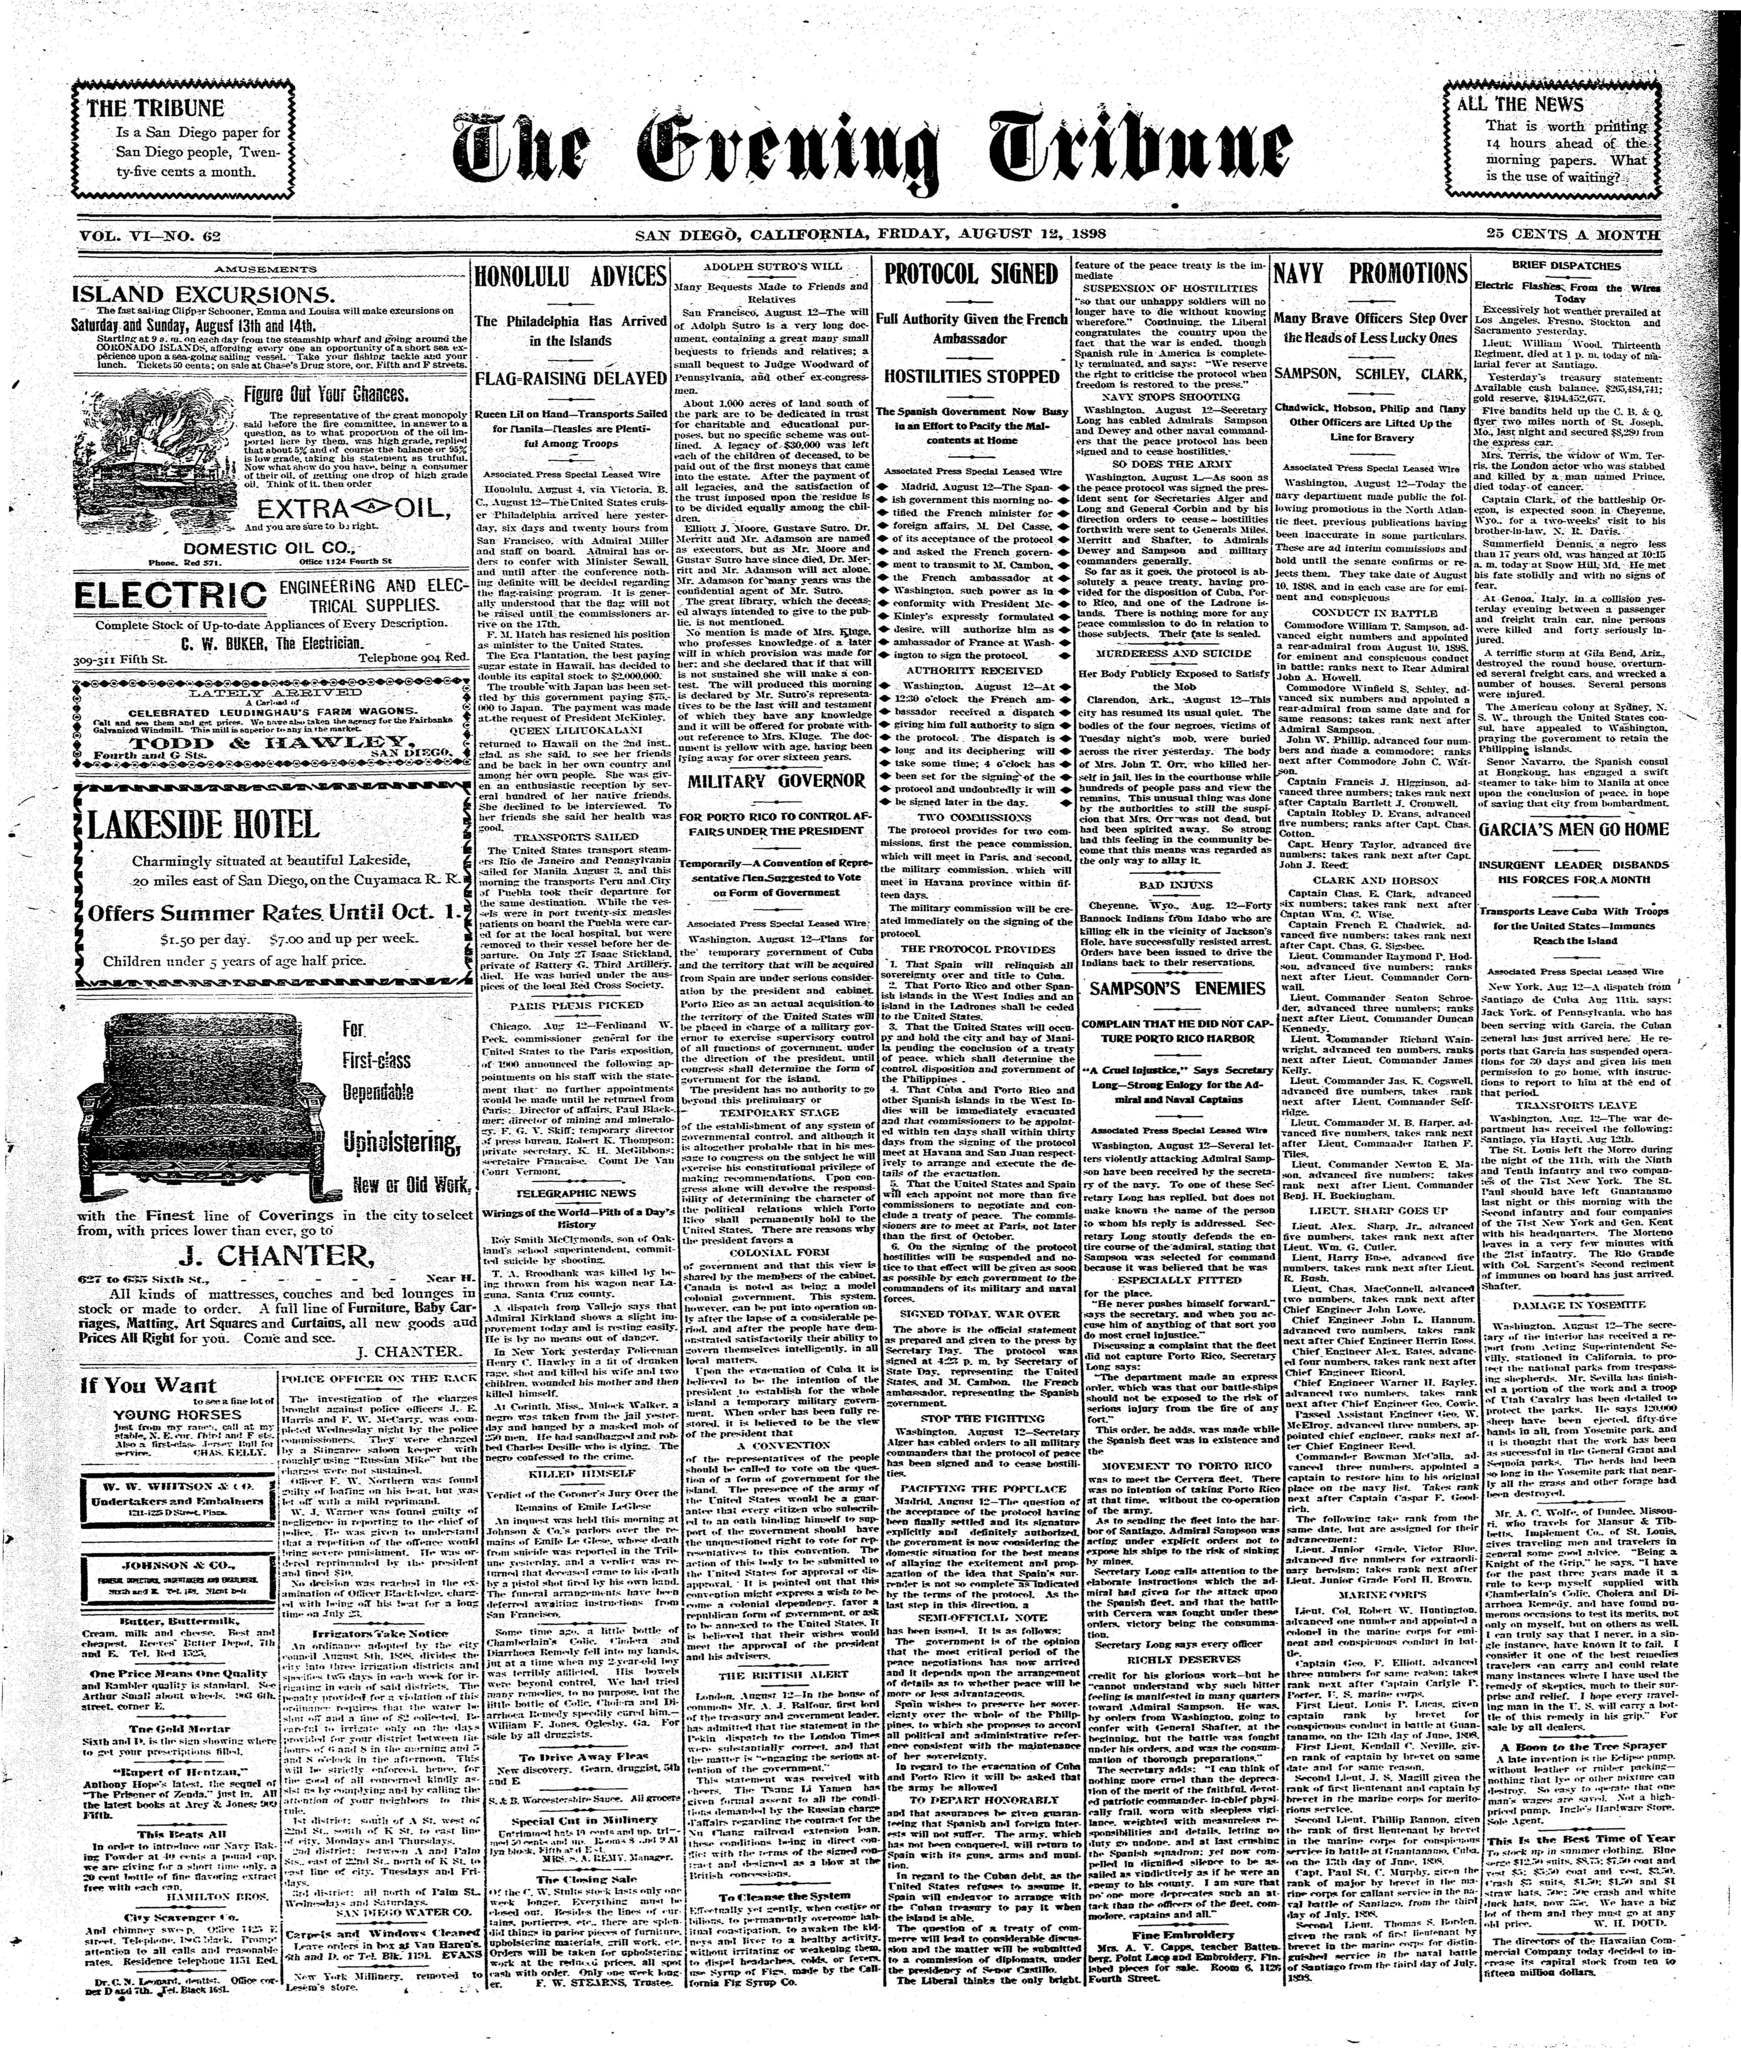 August 12, 1898